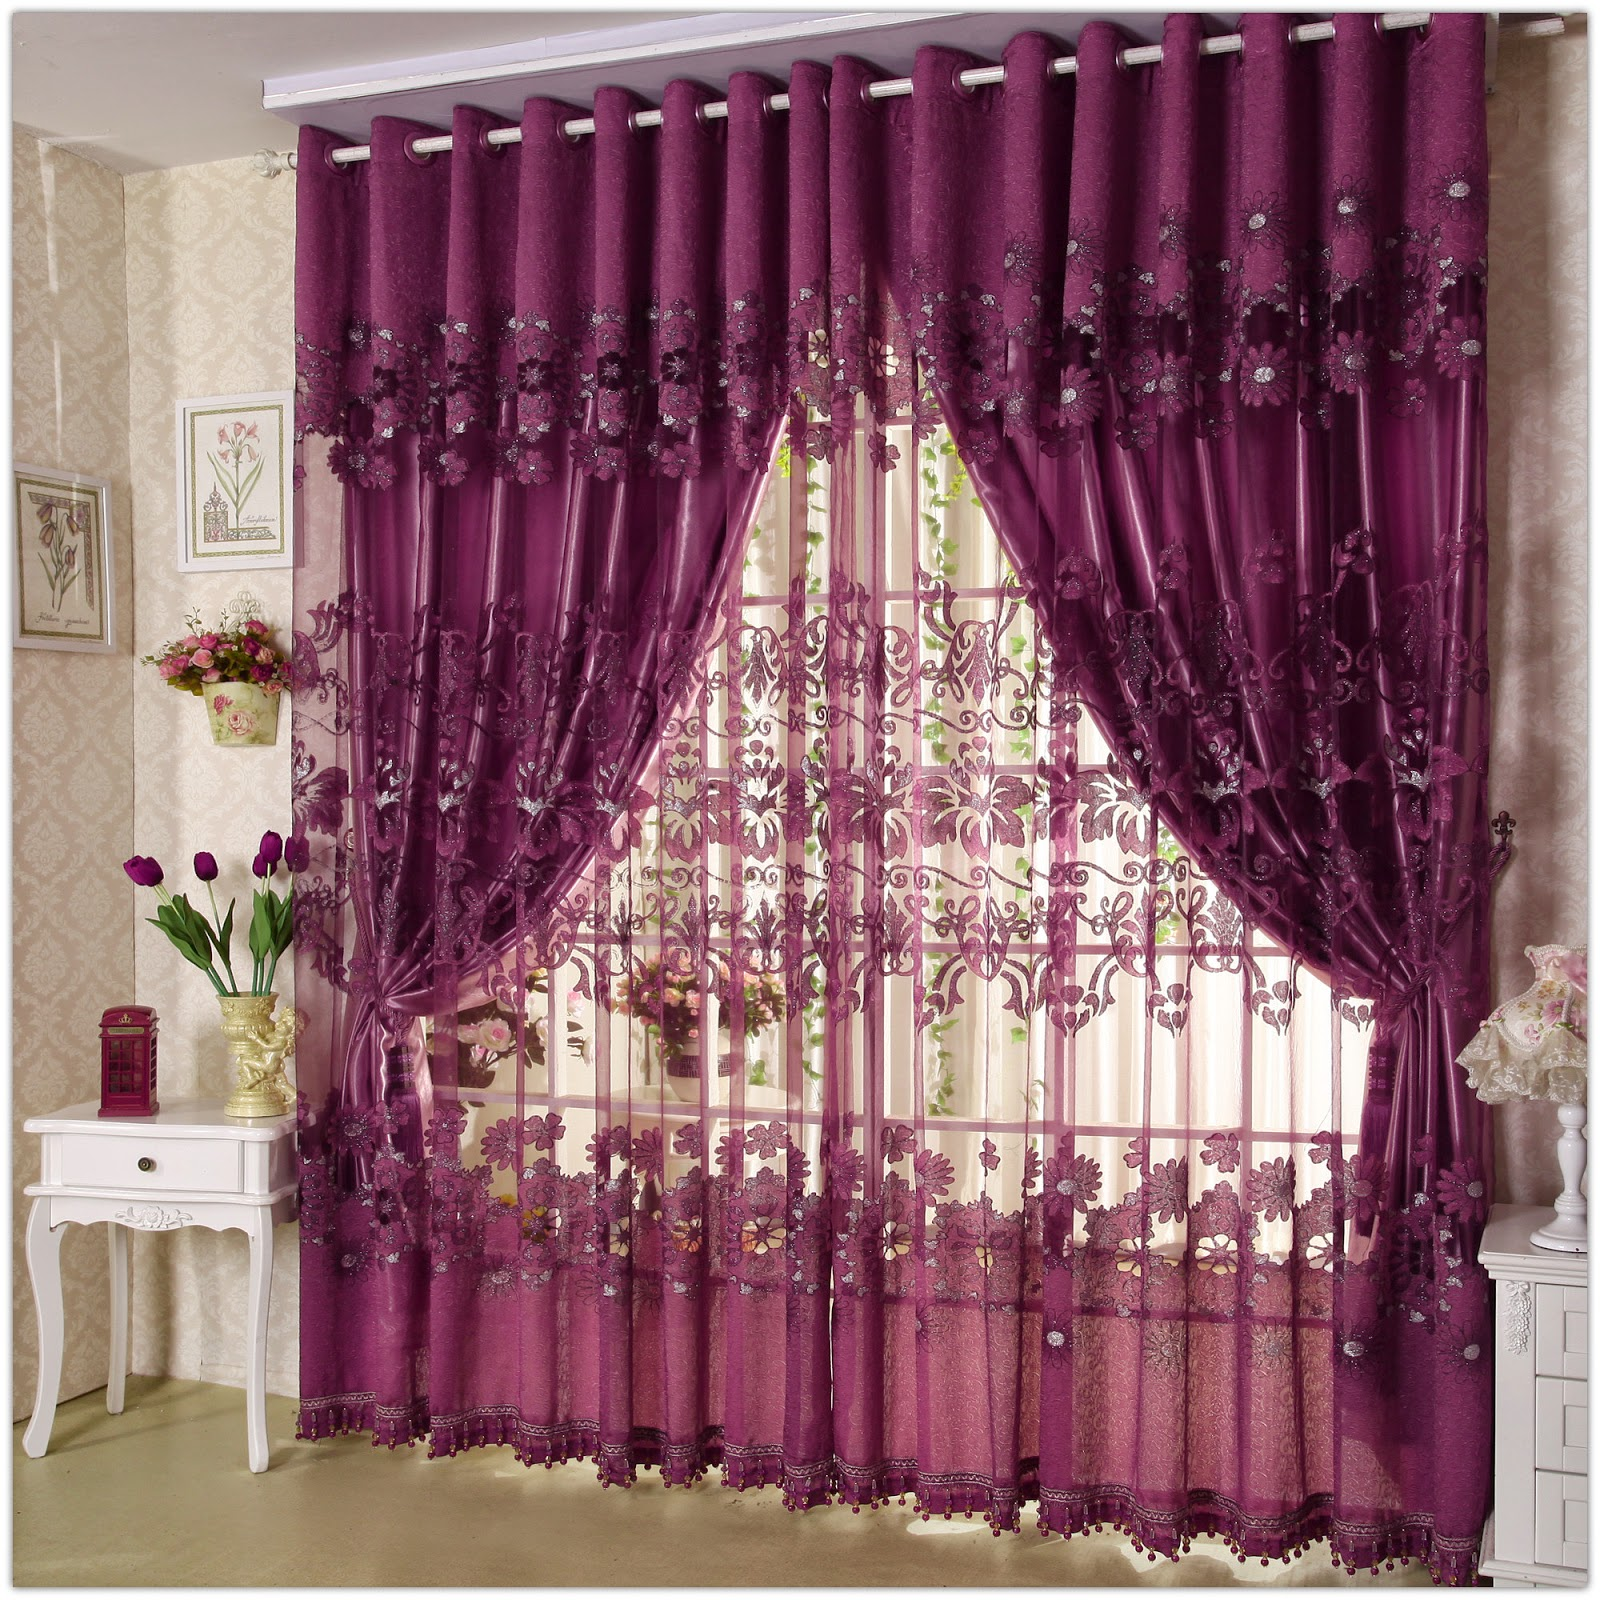 Superbe Unique Curtain Designs For Living Room Window Decorations